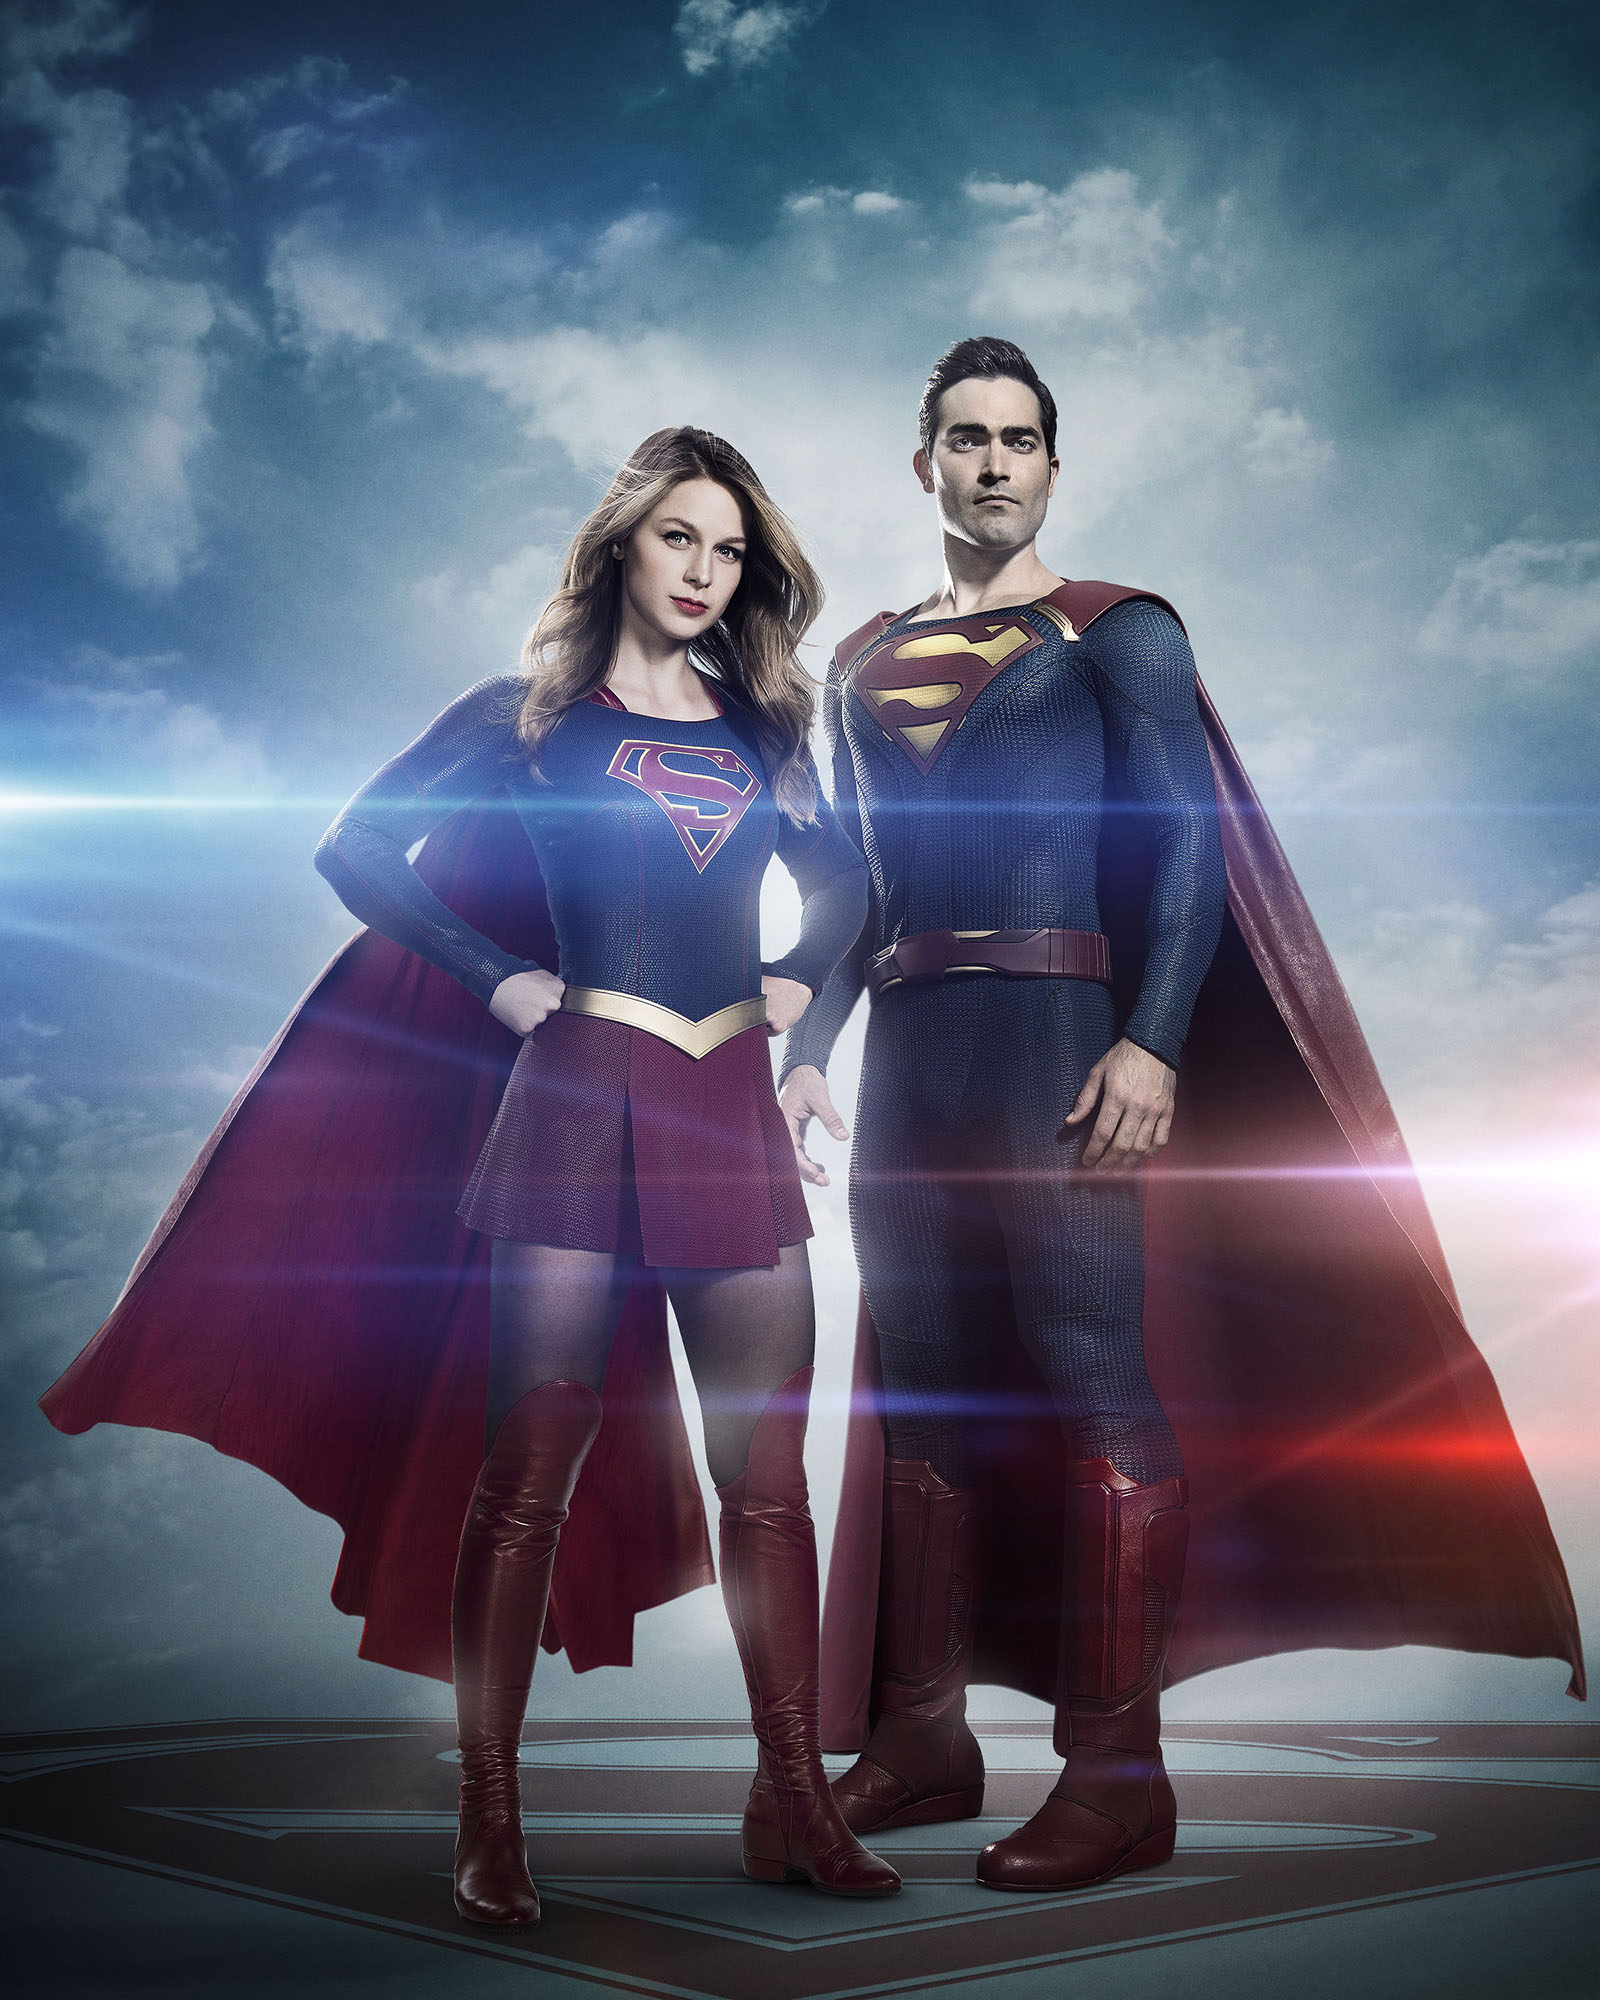 Superman 1st Look - Supergirl